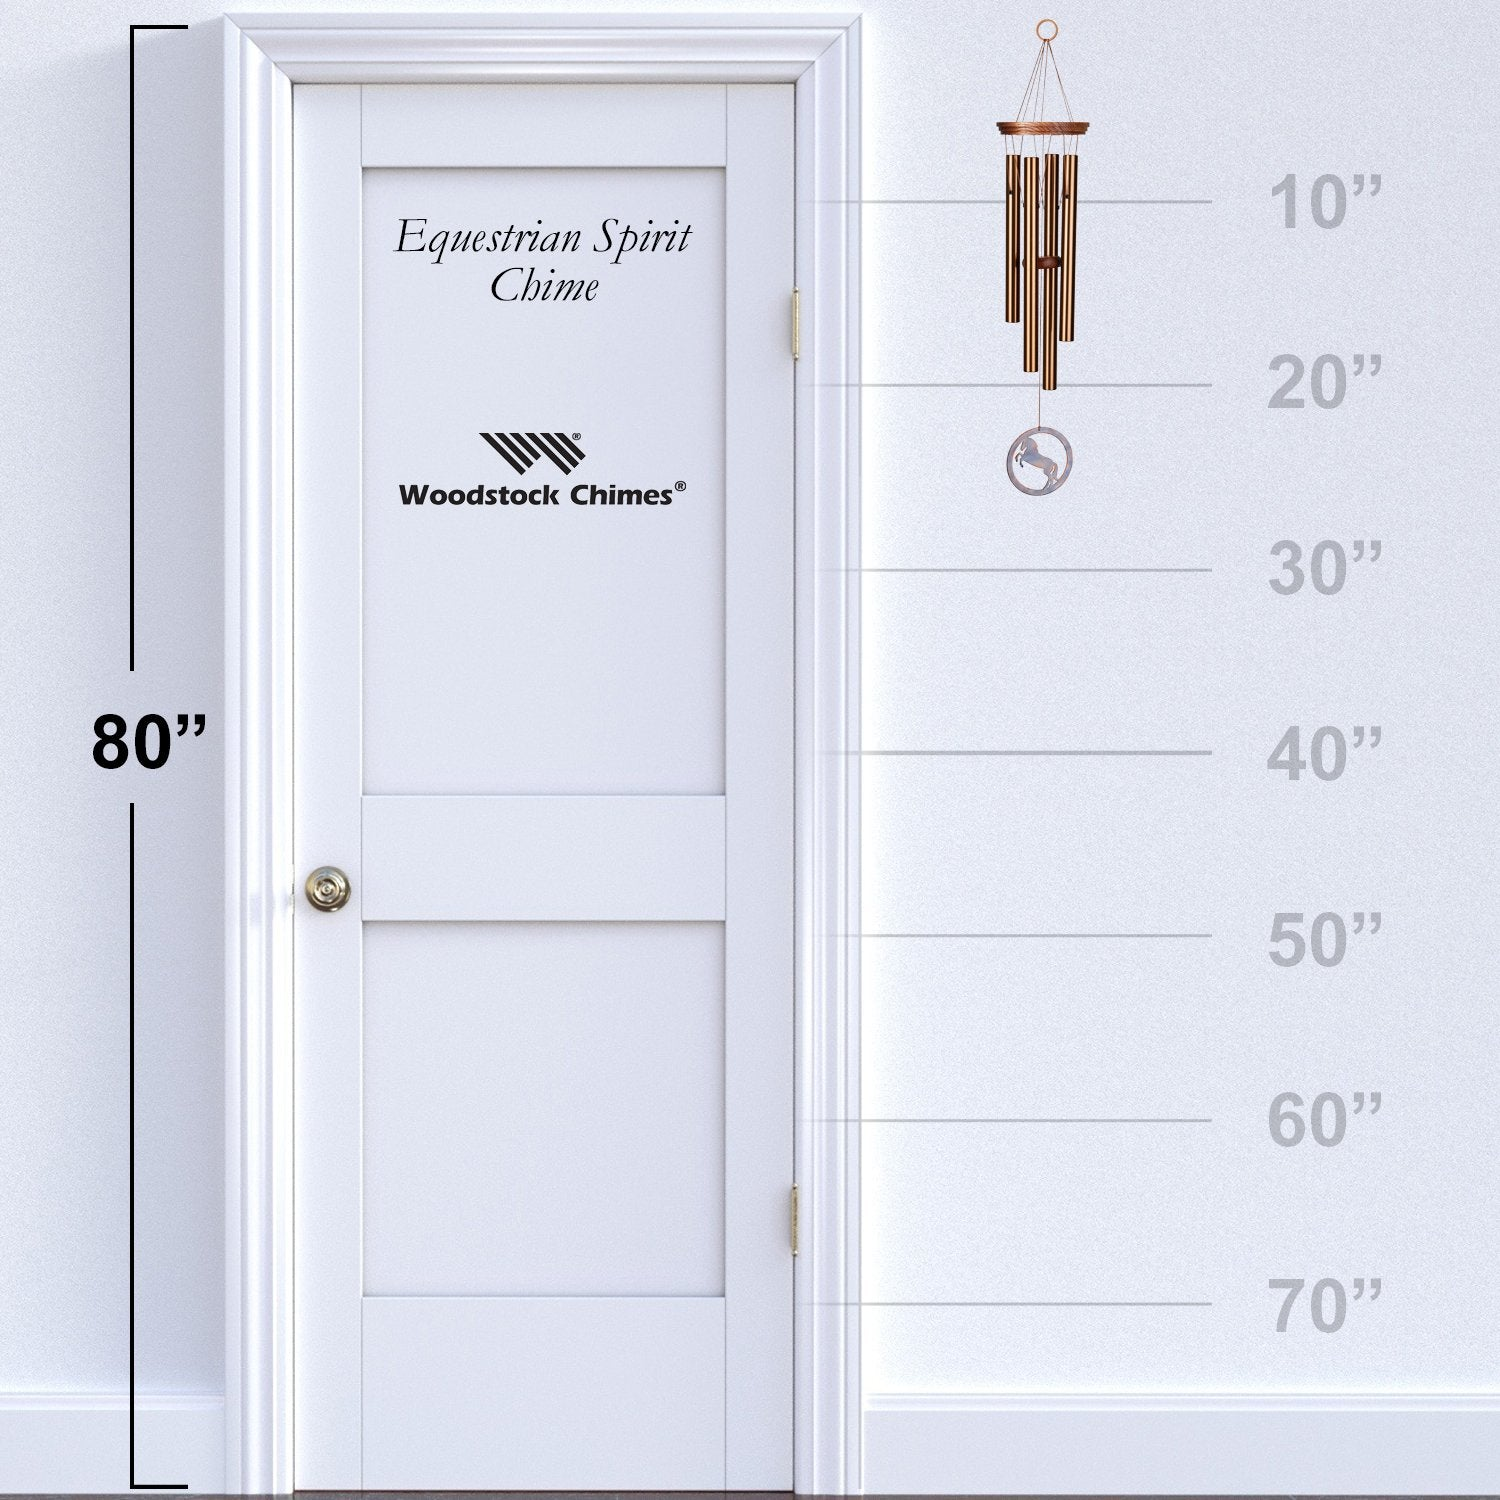 Equestrian Spirit Chime proportion image